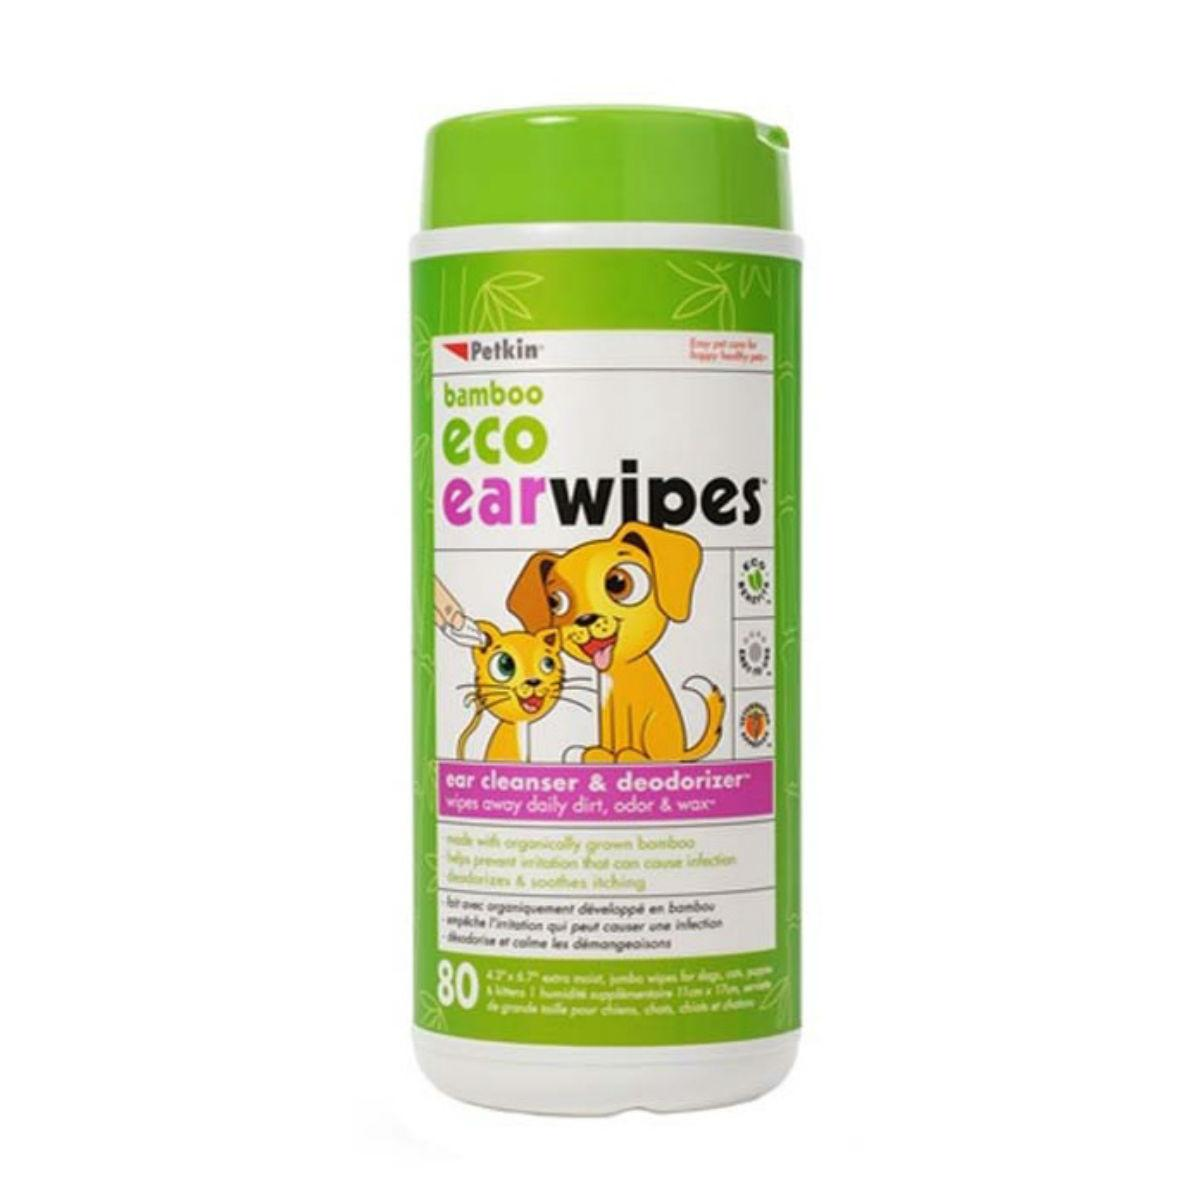 PetKin Bamboo Eco Earwipes for Dogs and Cats